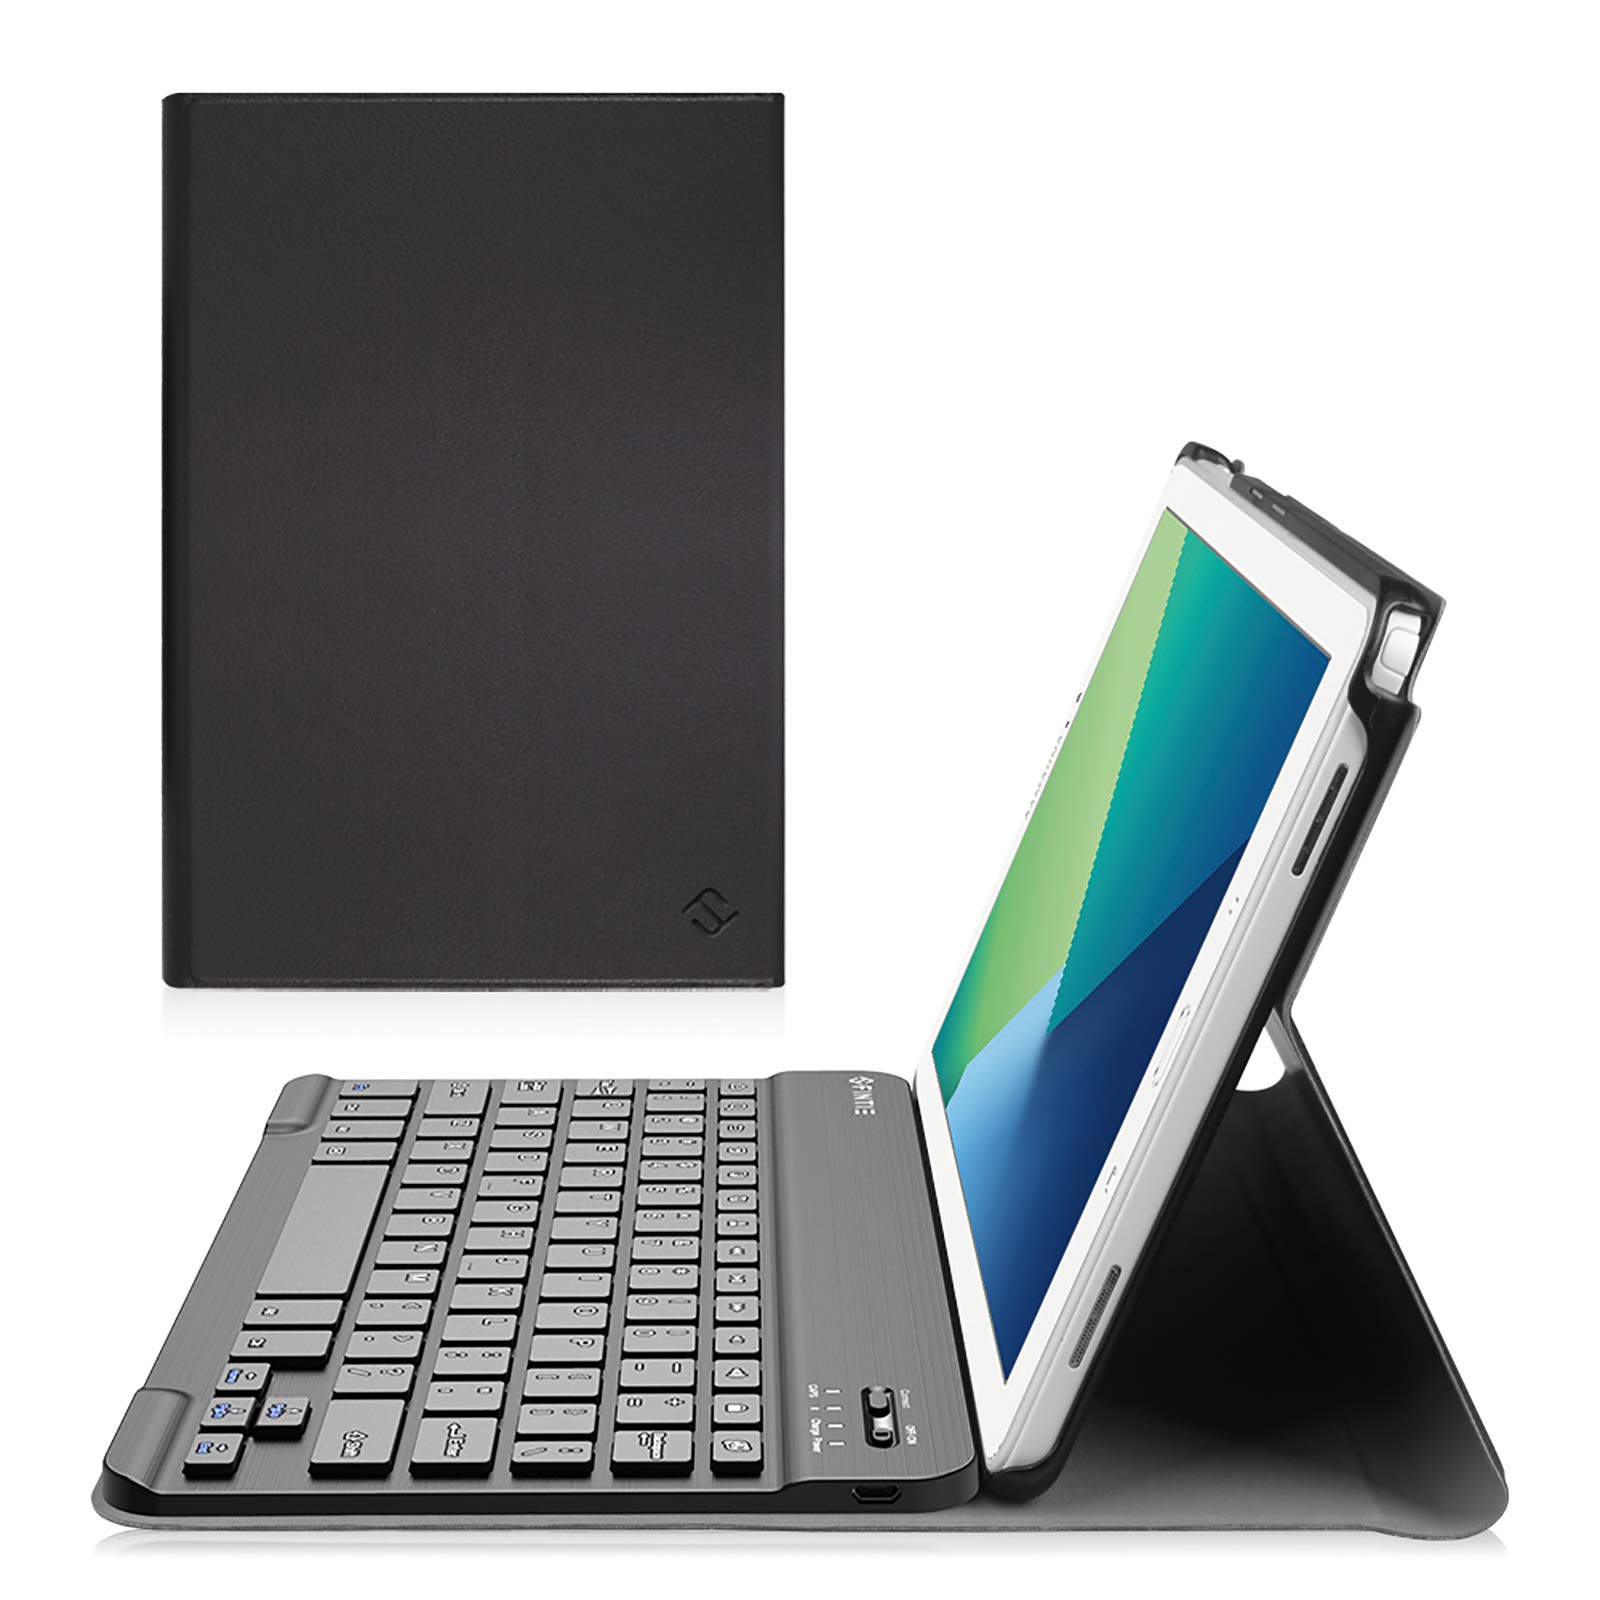 Fintie Keyboard Case for Samsung Galaxy Tab A 10.1 with S Pen 2016, Slim Stand Cover with Detachable Wireless Bluetooth Keyboard for Tab A 10.1 with S Pen(SM-P580/P585), Black